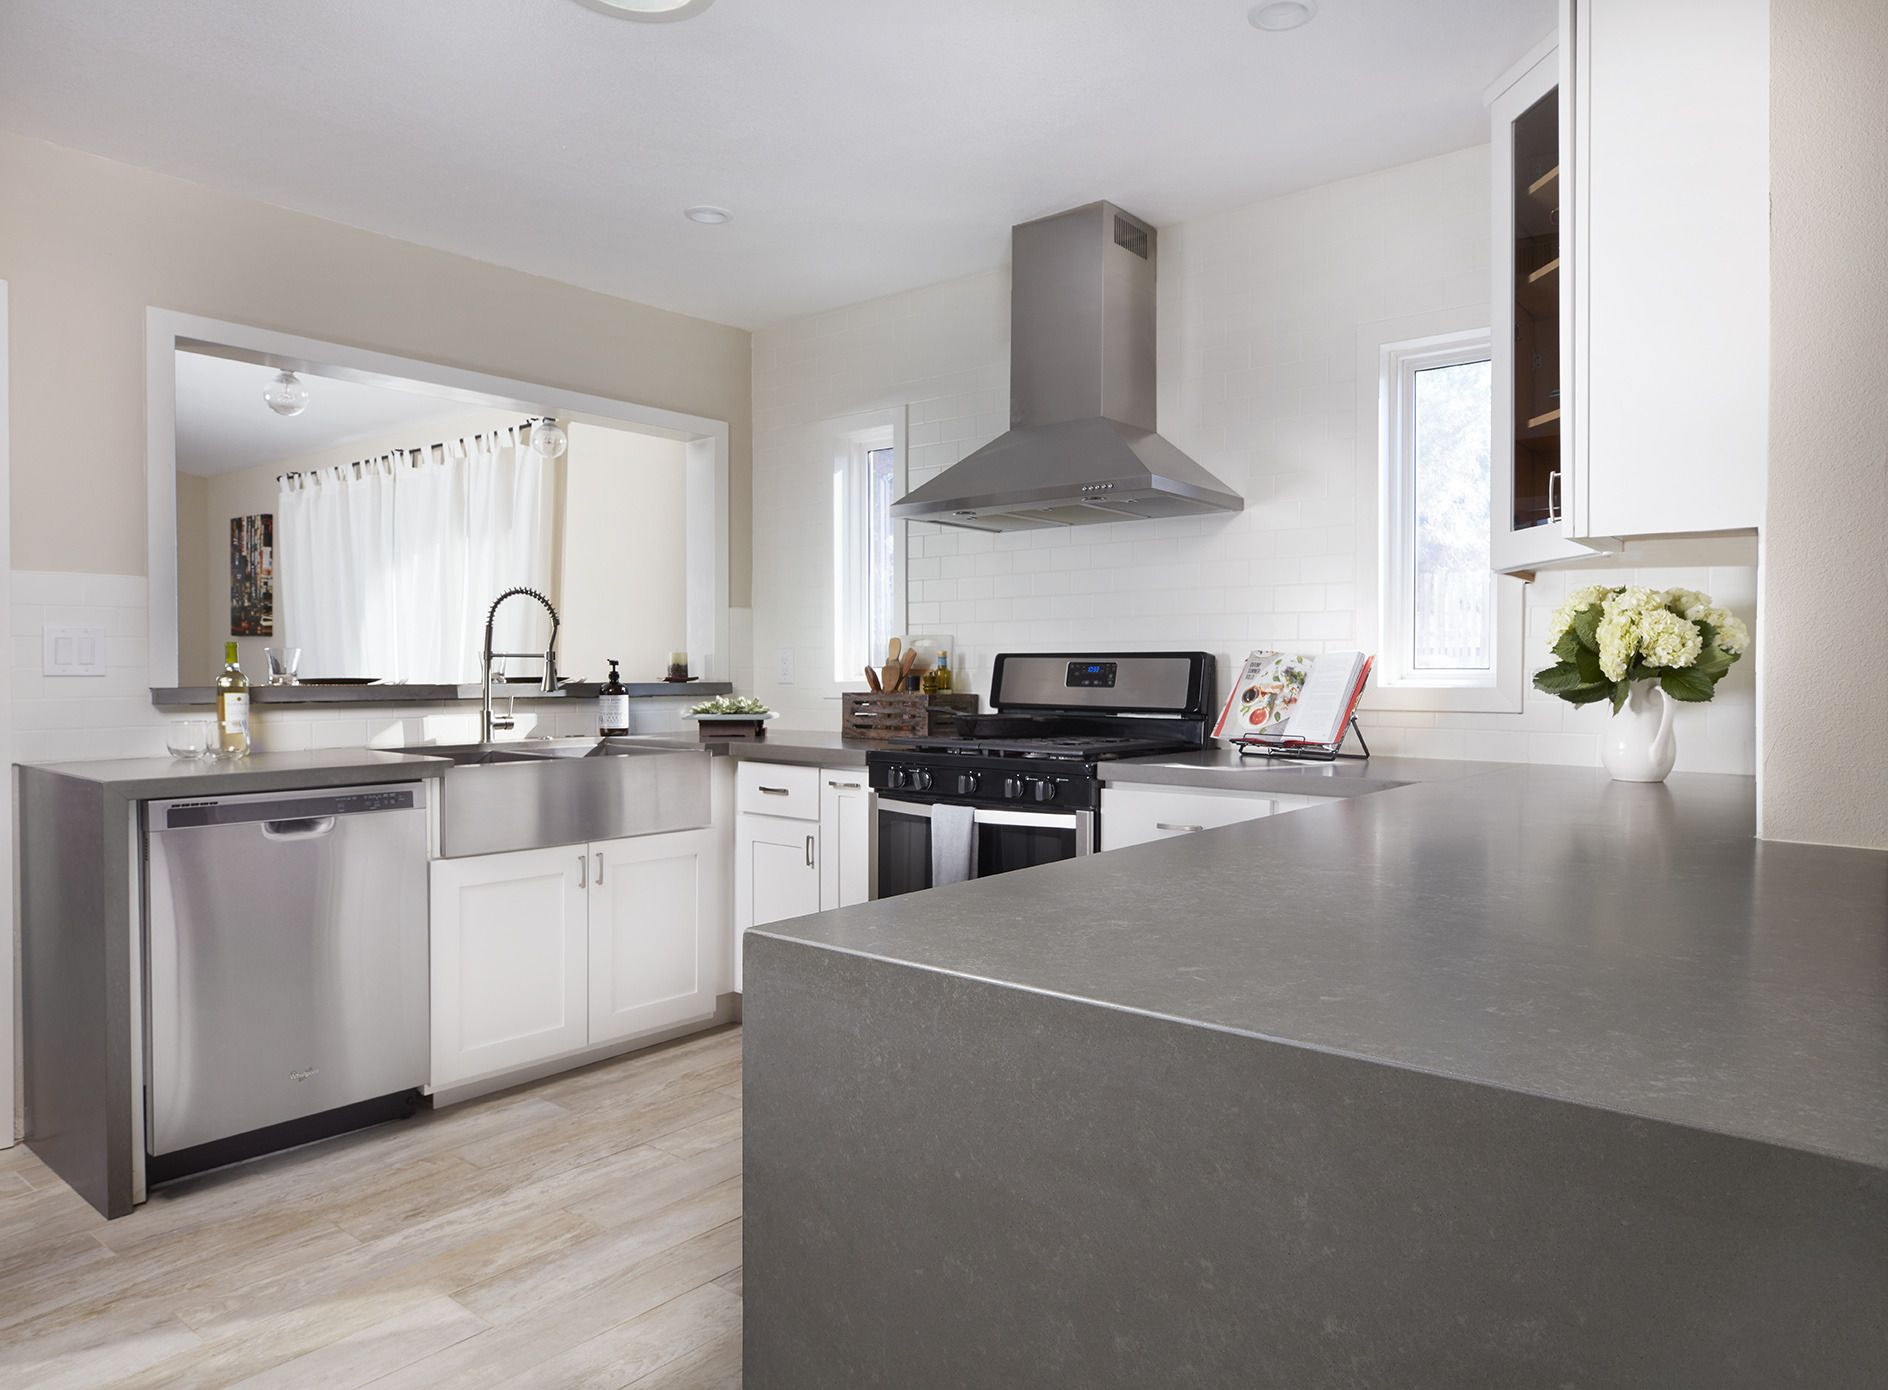 Superb Thereu0027s No Denying The #quartz Countertop Craze! The Texture Of These  Metropolis Grey Quartz